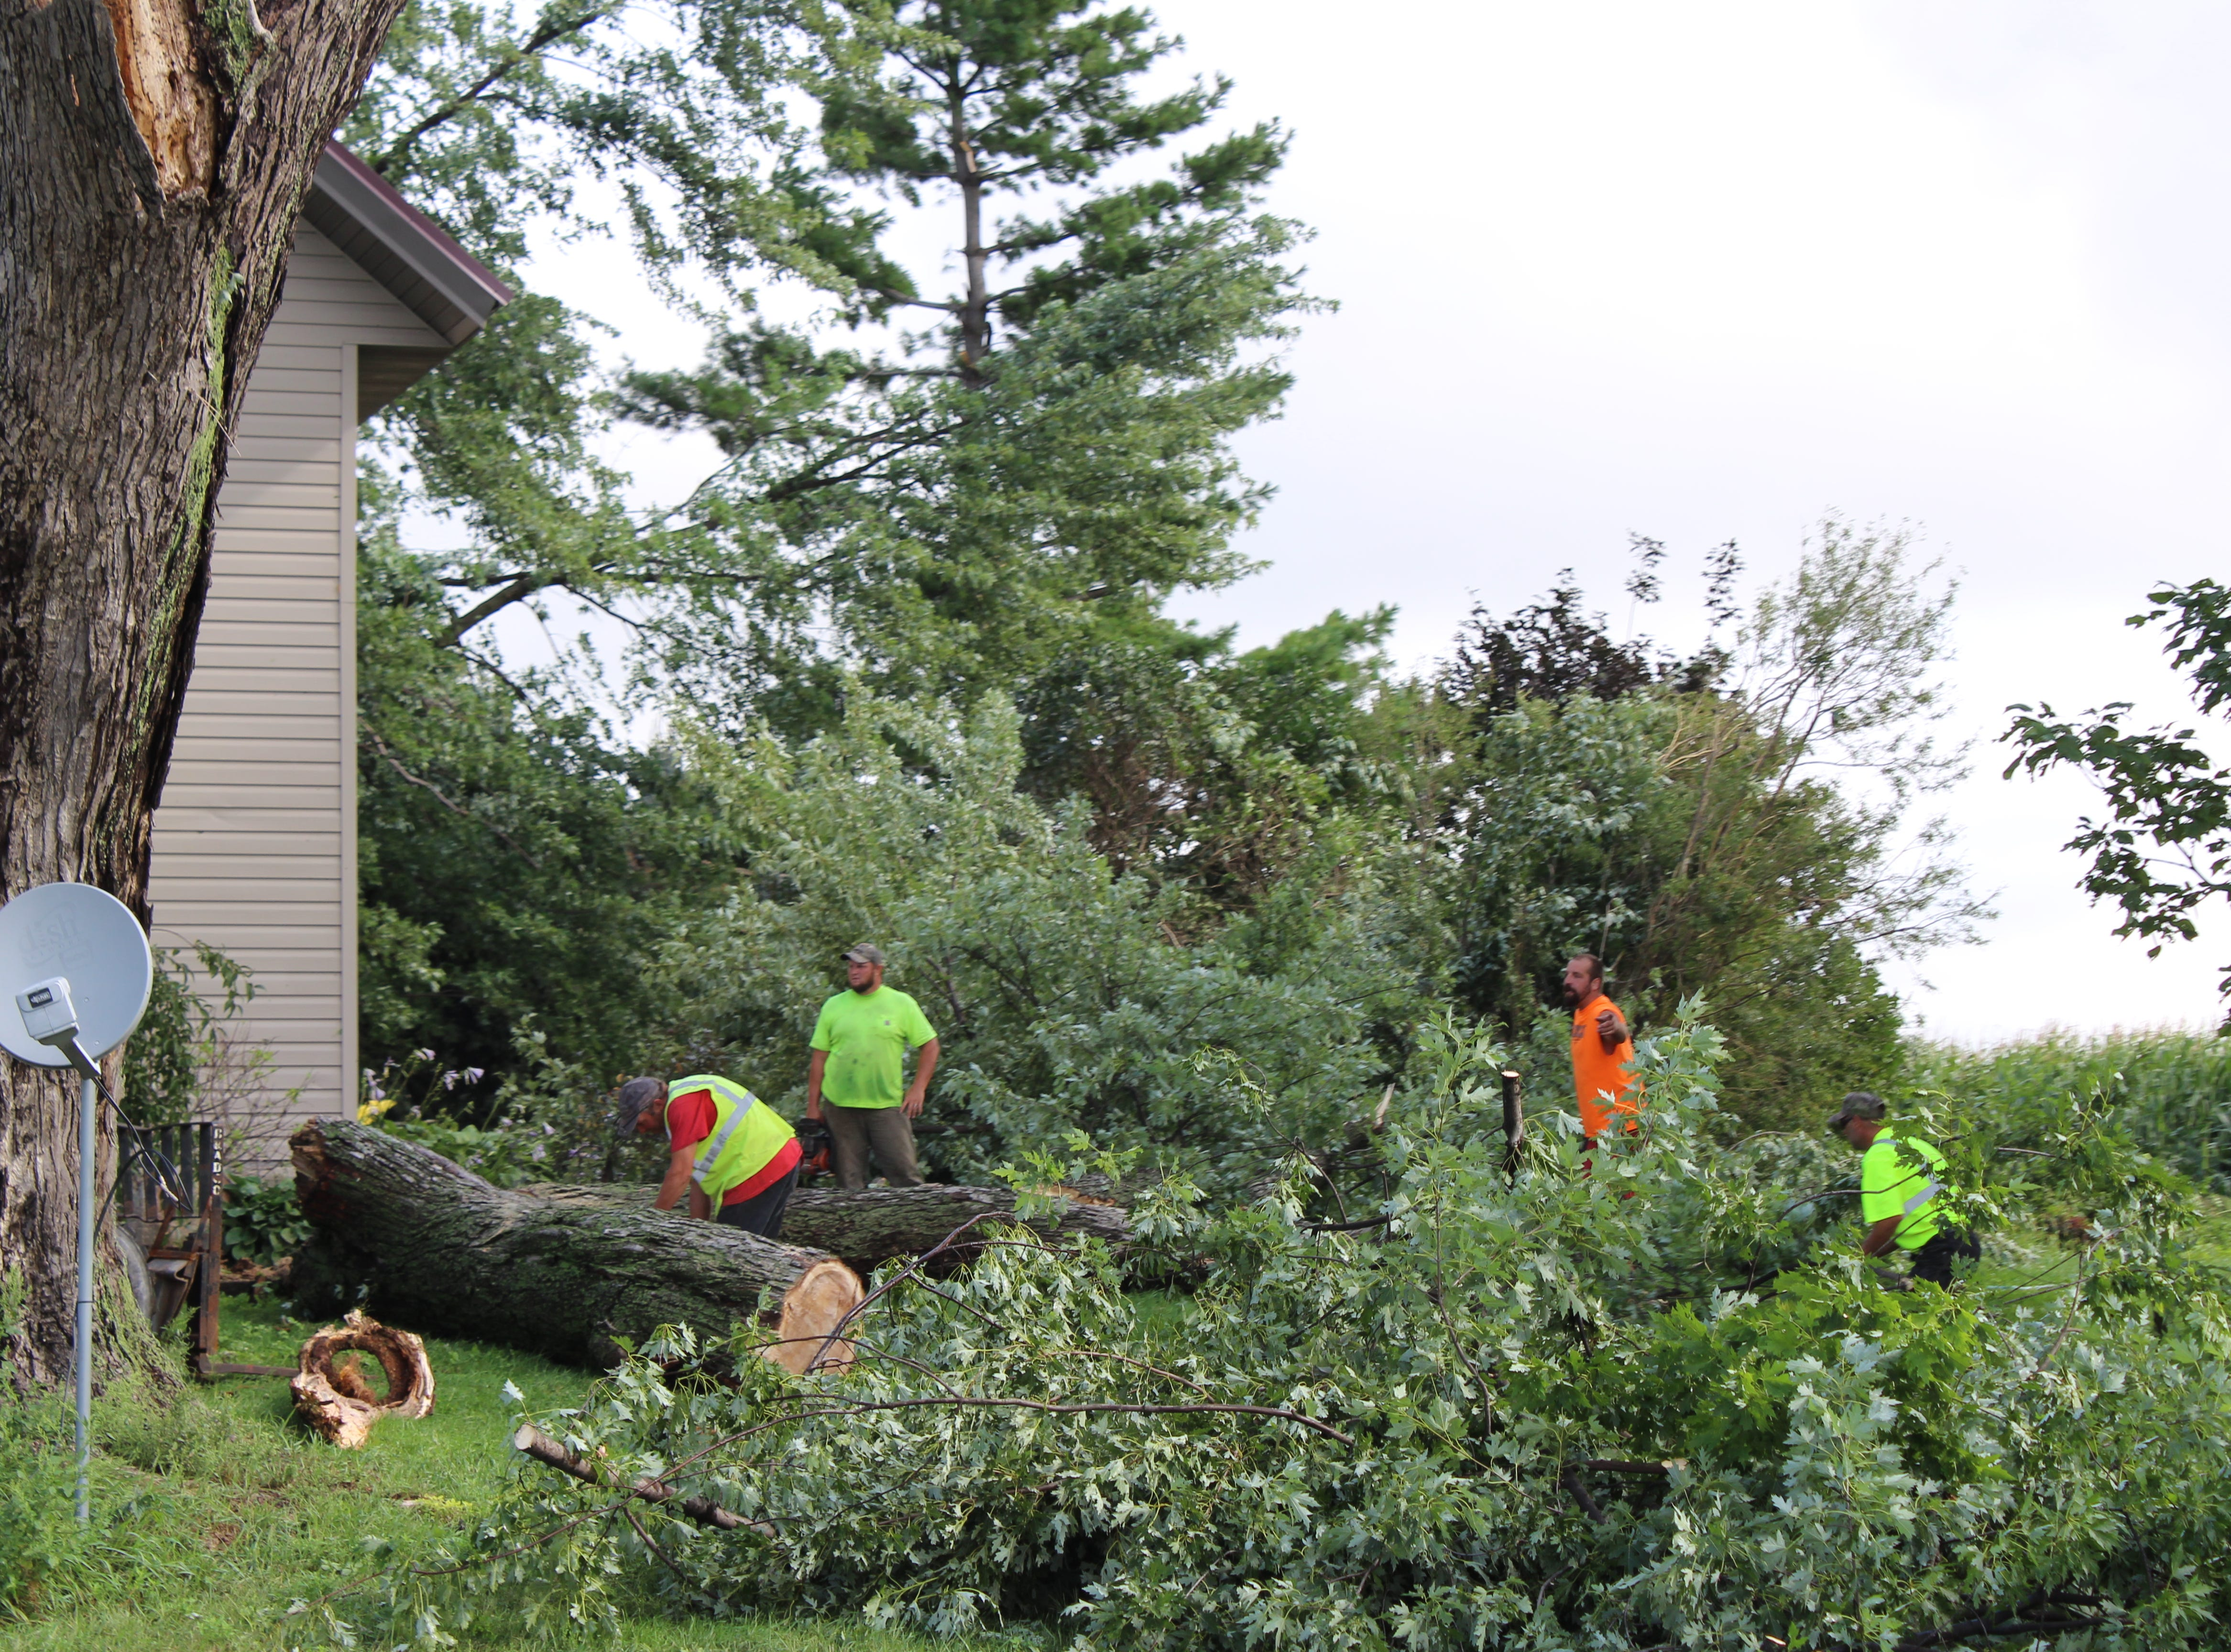 Volunteers cut up downed trees on the front lawn of Eric and Danielle Wetzel's home on Hemp Road.